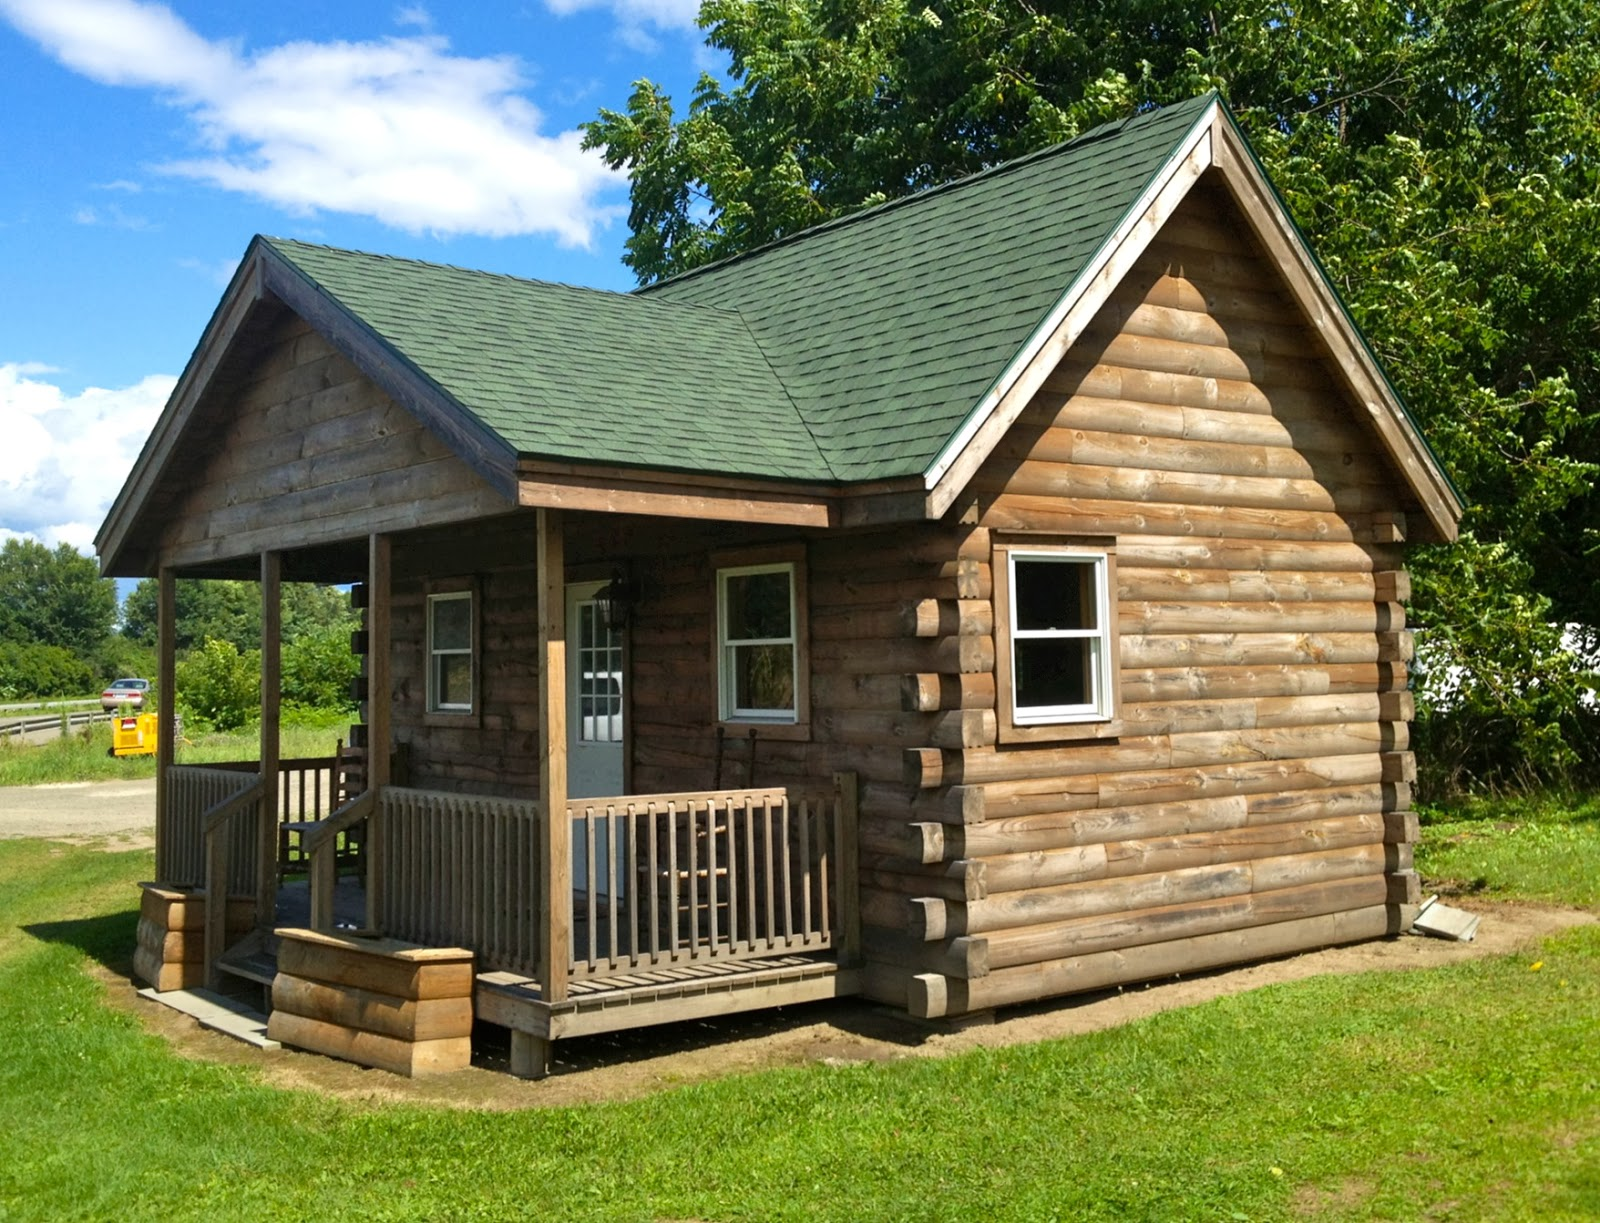 Small scale homes tiny home near binghamton ny for Small house desings